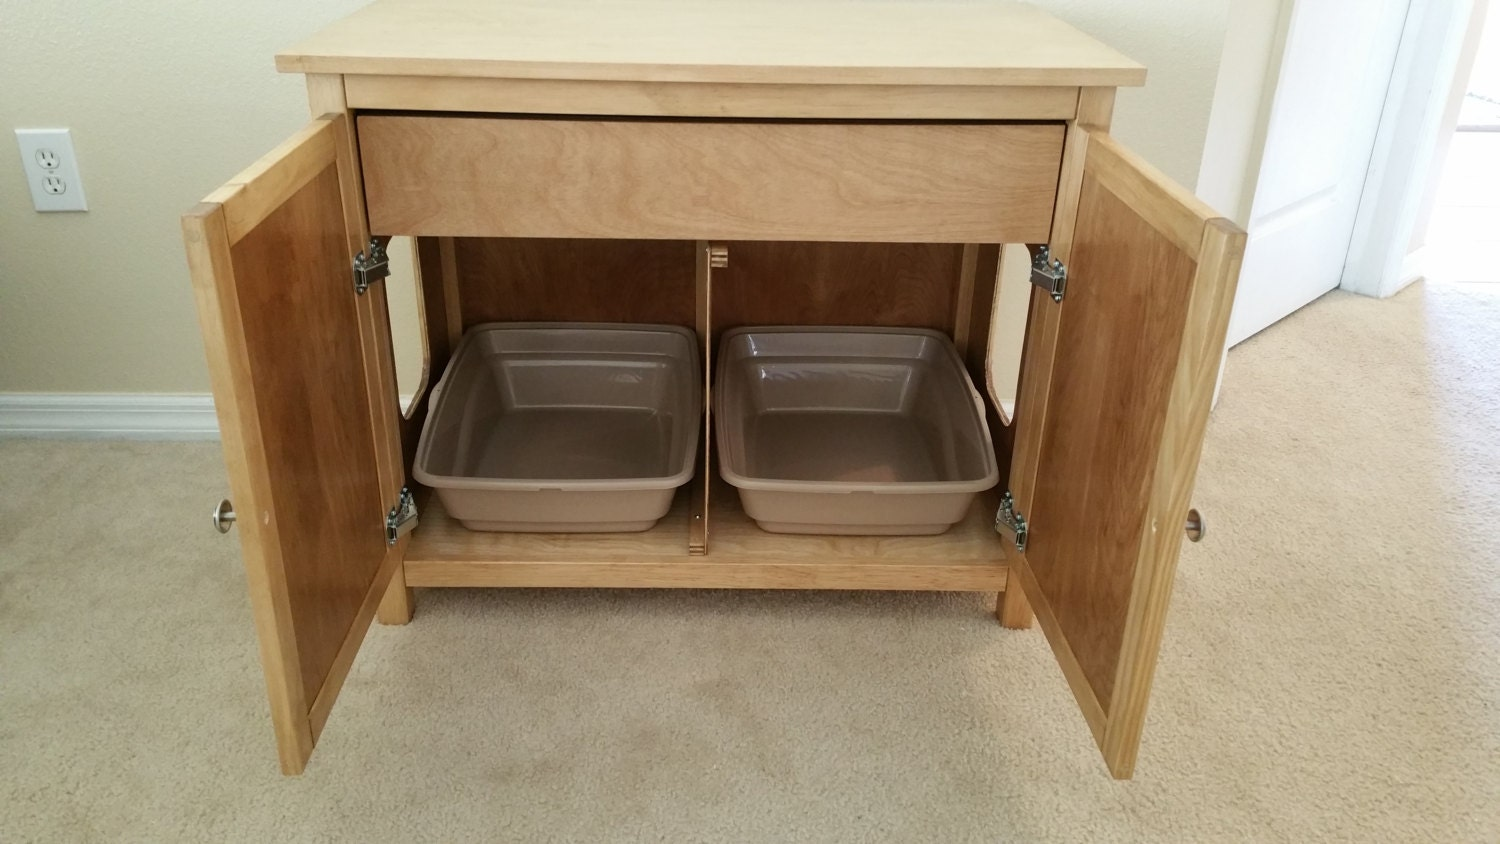 Odor free double cat litter box cabinet bathroom w drawer made in usa flat pack wood no Bathroom cabinets made in usa